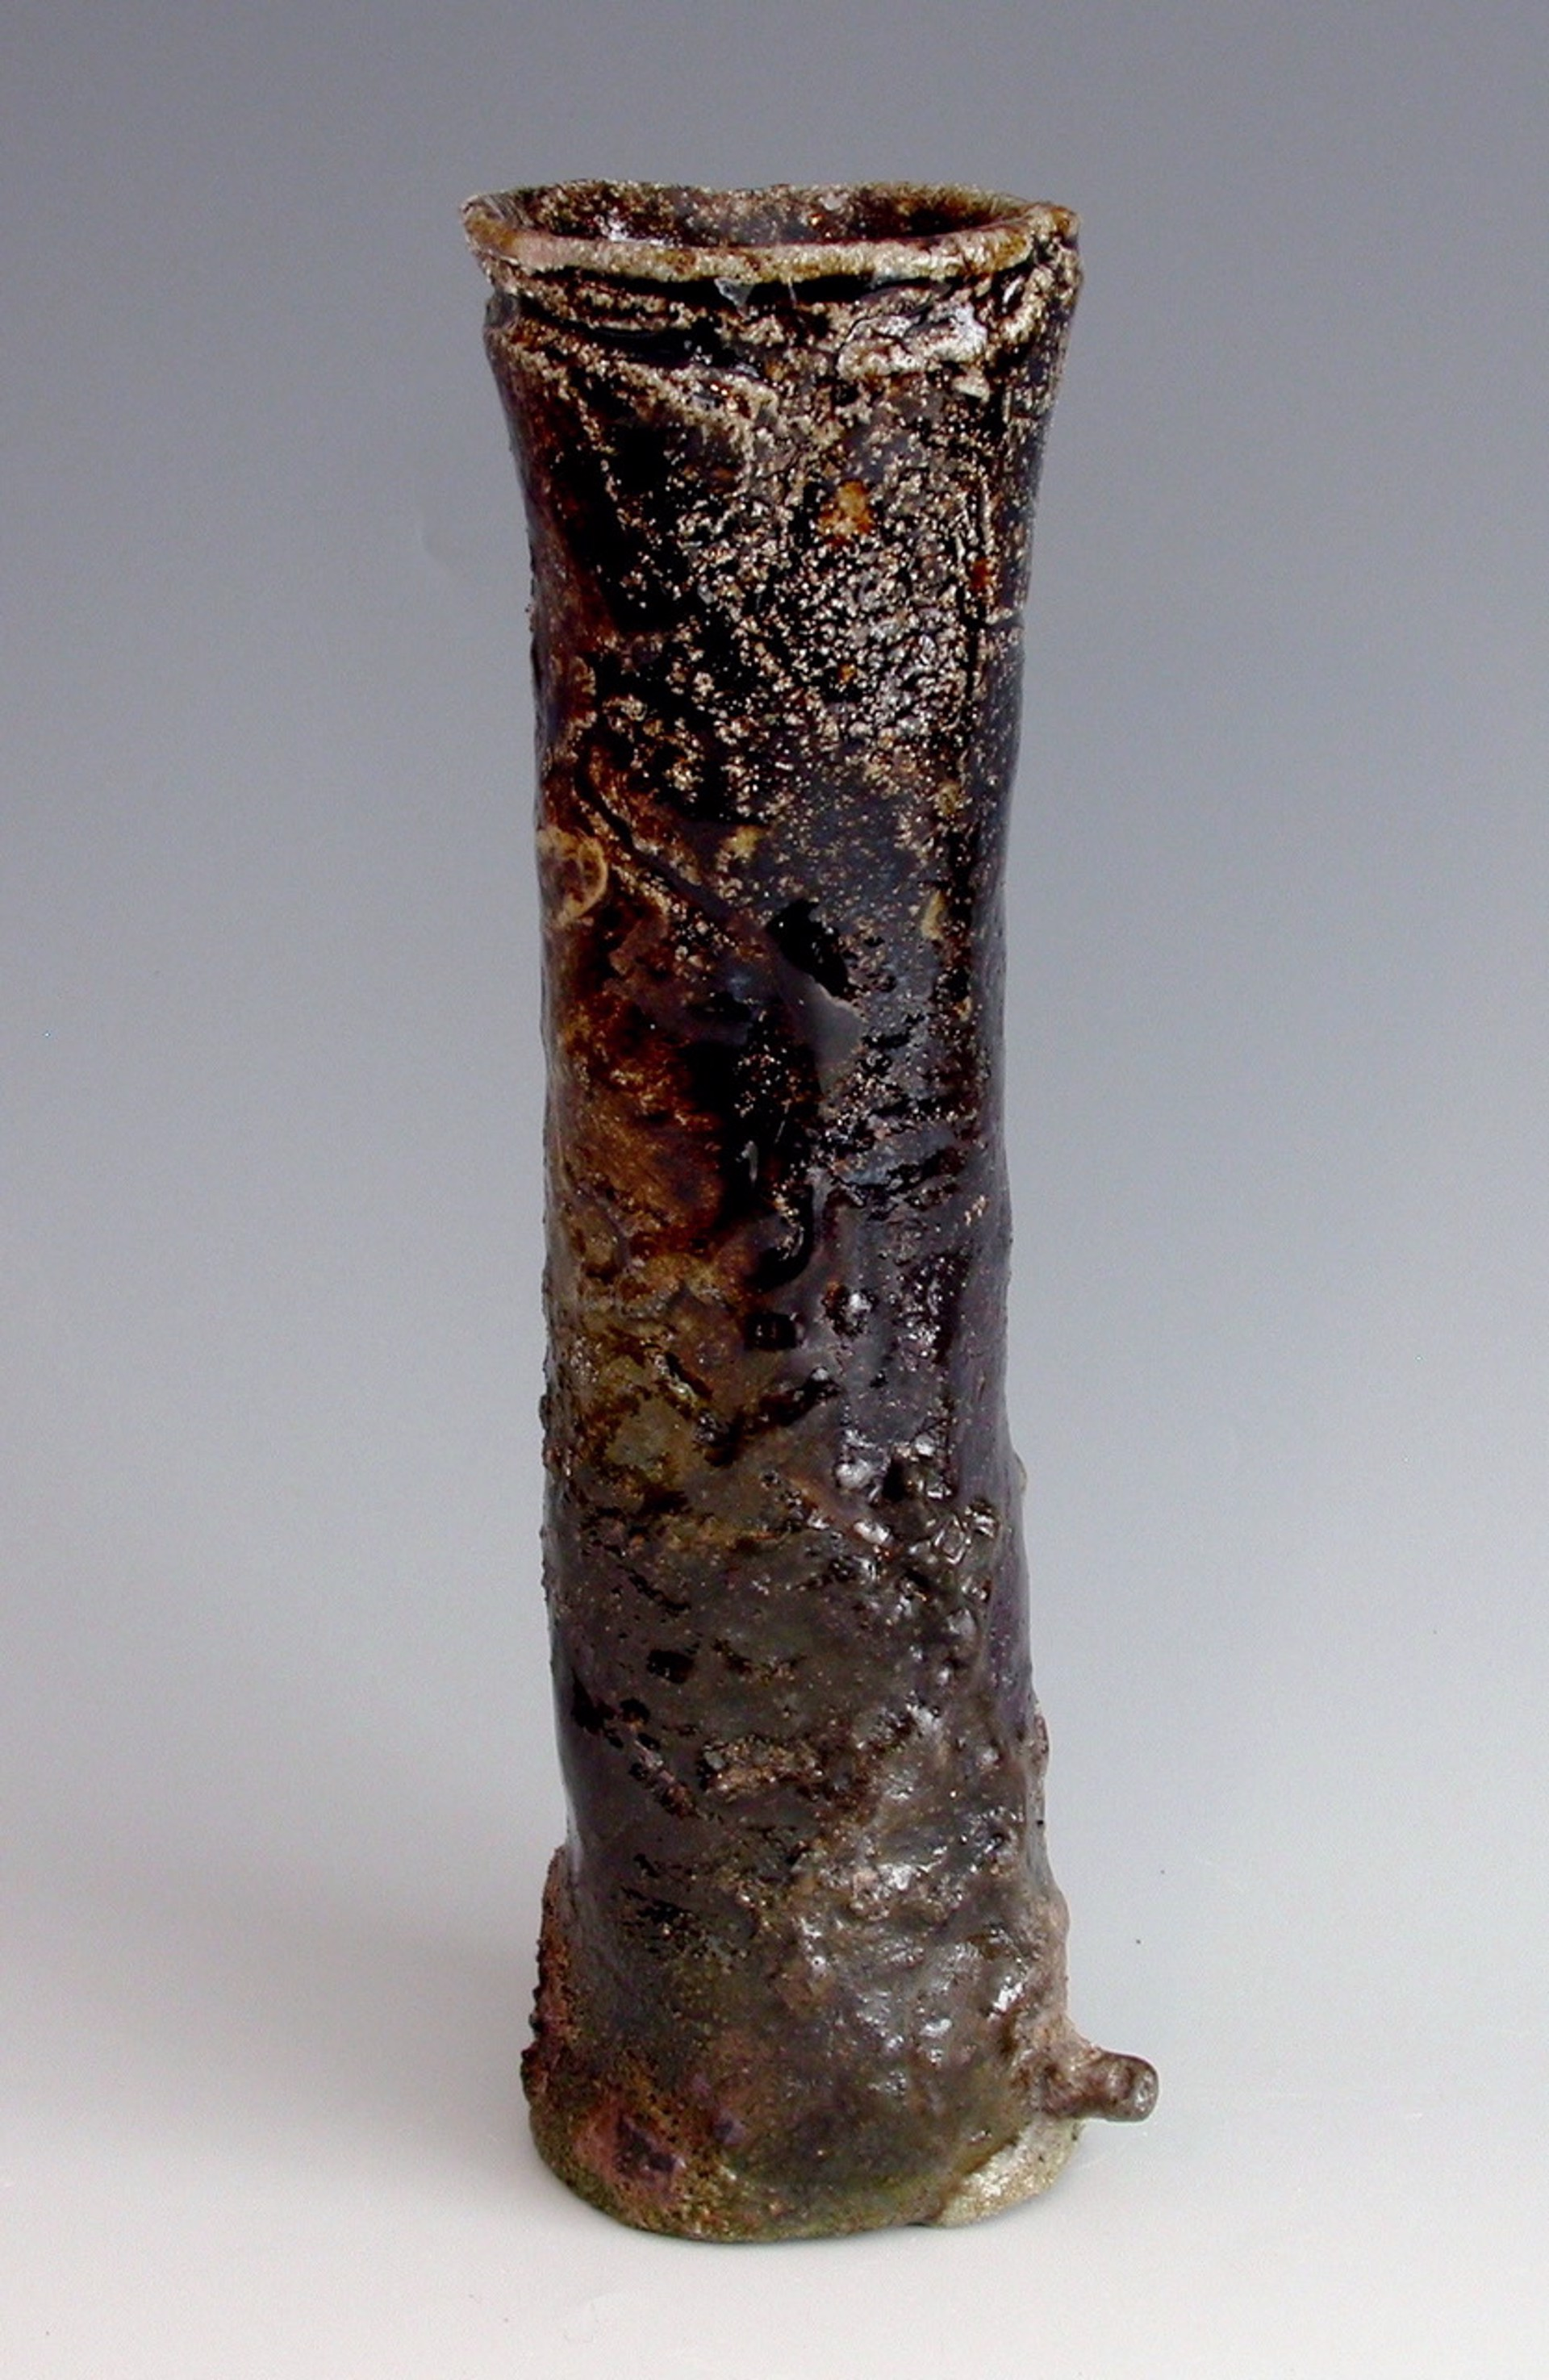 Wood fired Vessel 4 by Kristin Müller